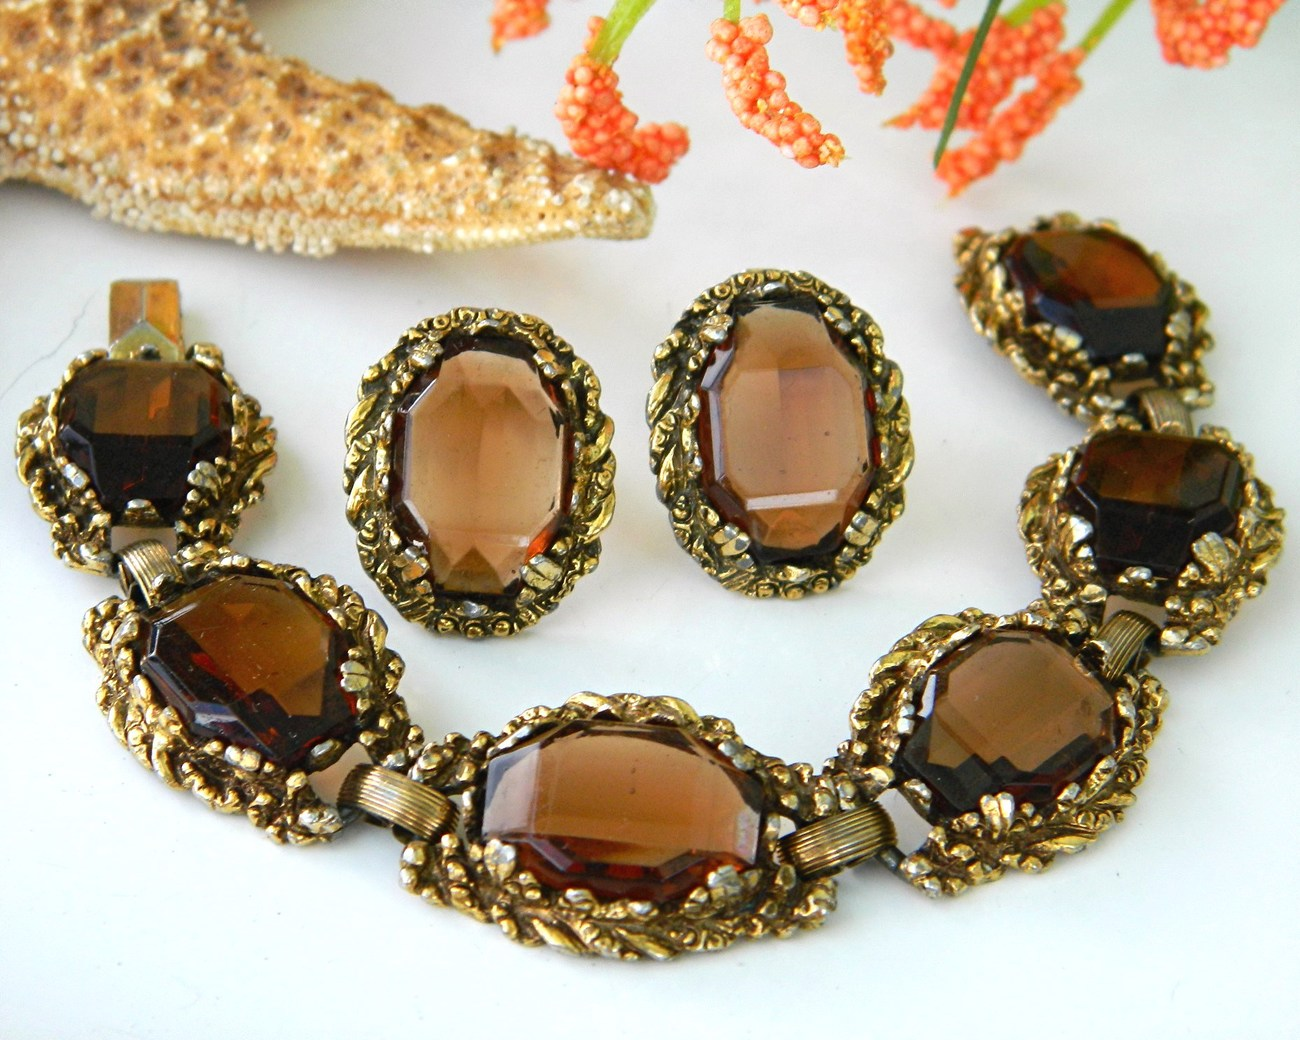 Vintage_link_bracelet_earrings_smoky_brown_quartz_demi_parure